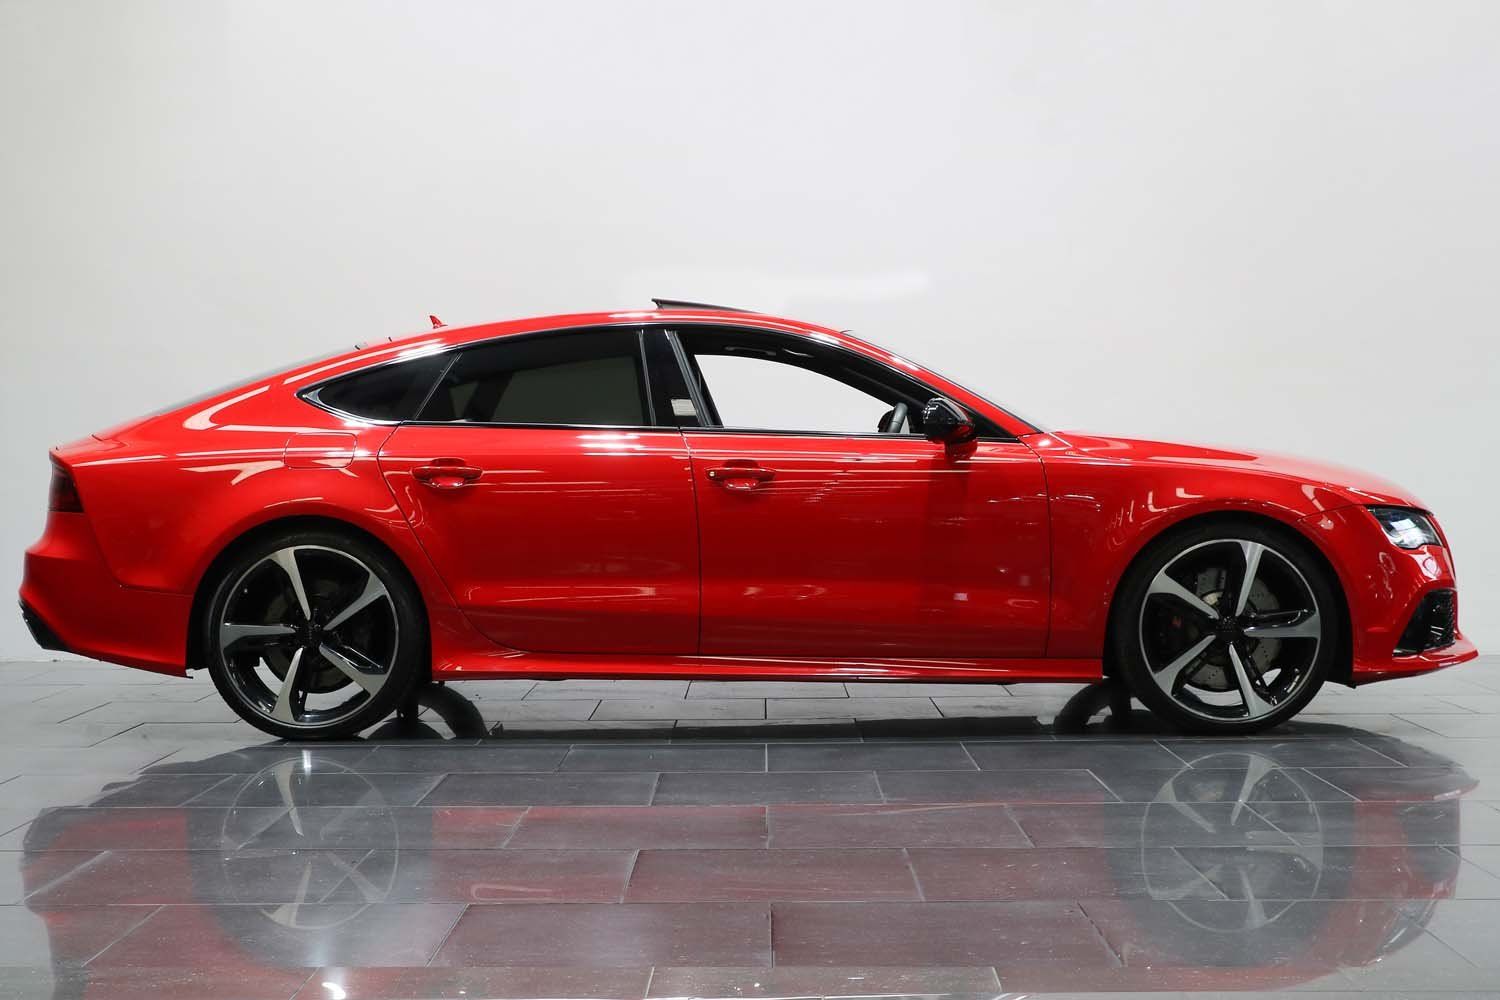 2014 AUDI RS7 SPORTBACK 4.0 TFSI V8 QUATTRO S TRONIC For Sale (picture 2 of 6)